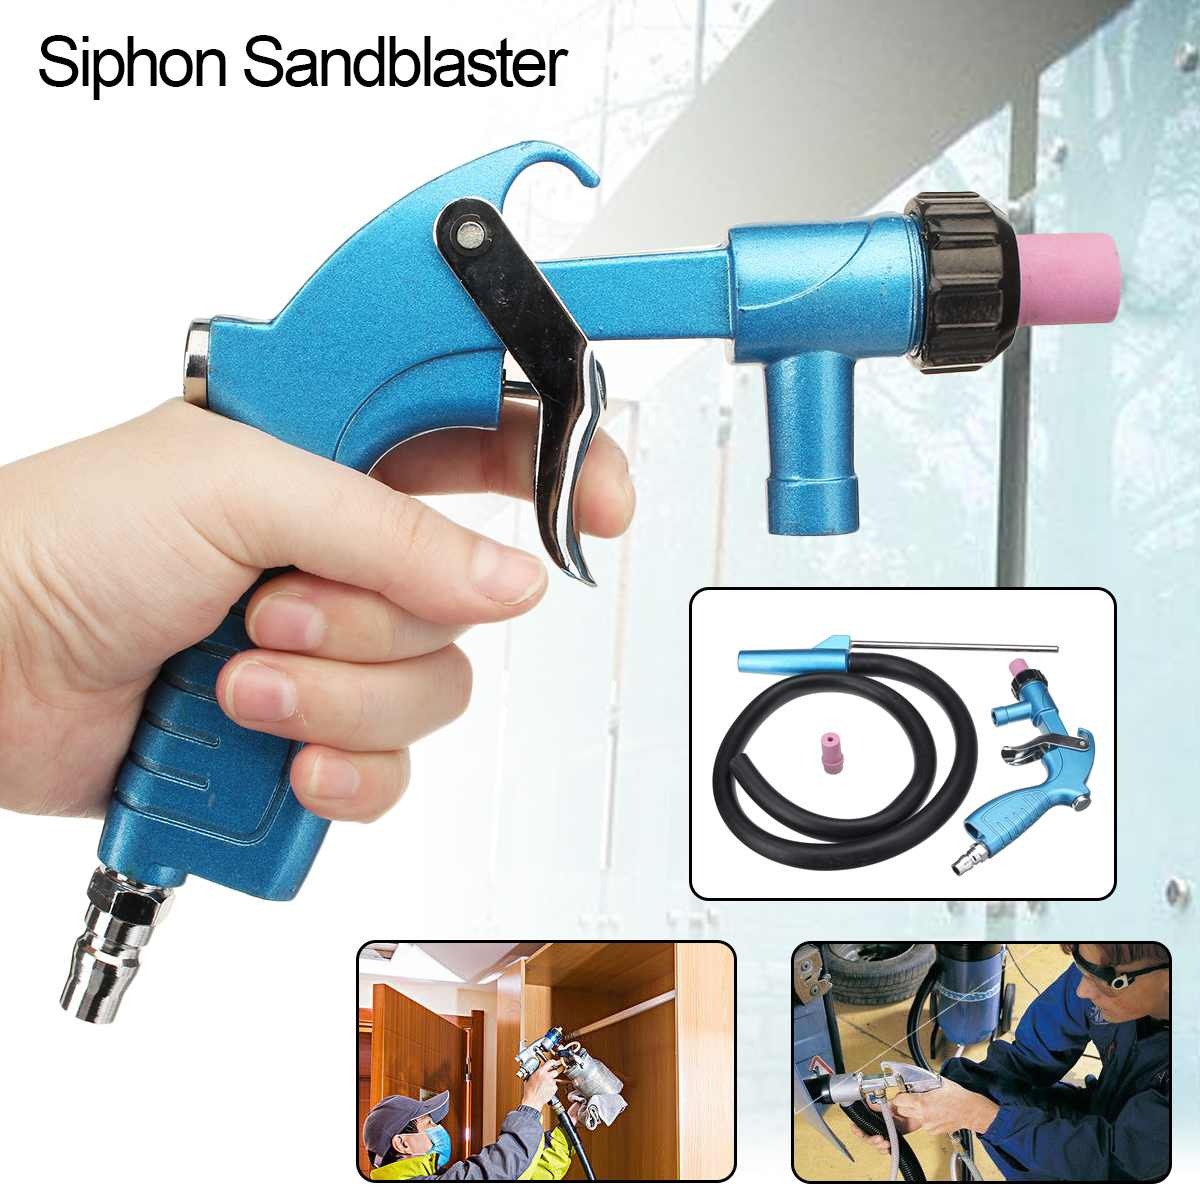 Sandblaster Air Siphon Feed Blasting Power Tool Kit Abrasive Tool Sprayer With Ceramic Nozzle Tips Sand Suction Pipe